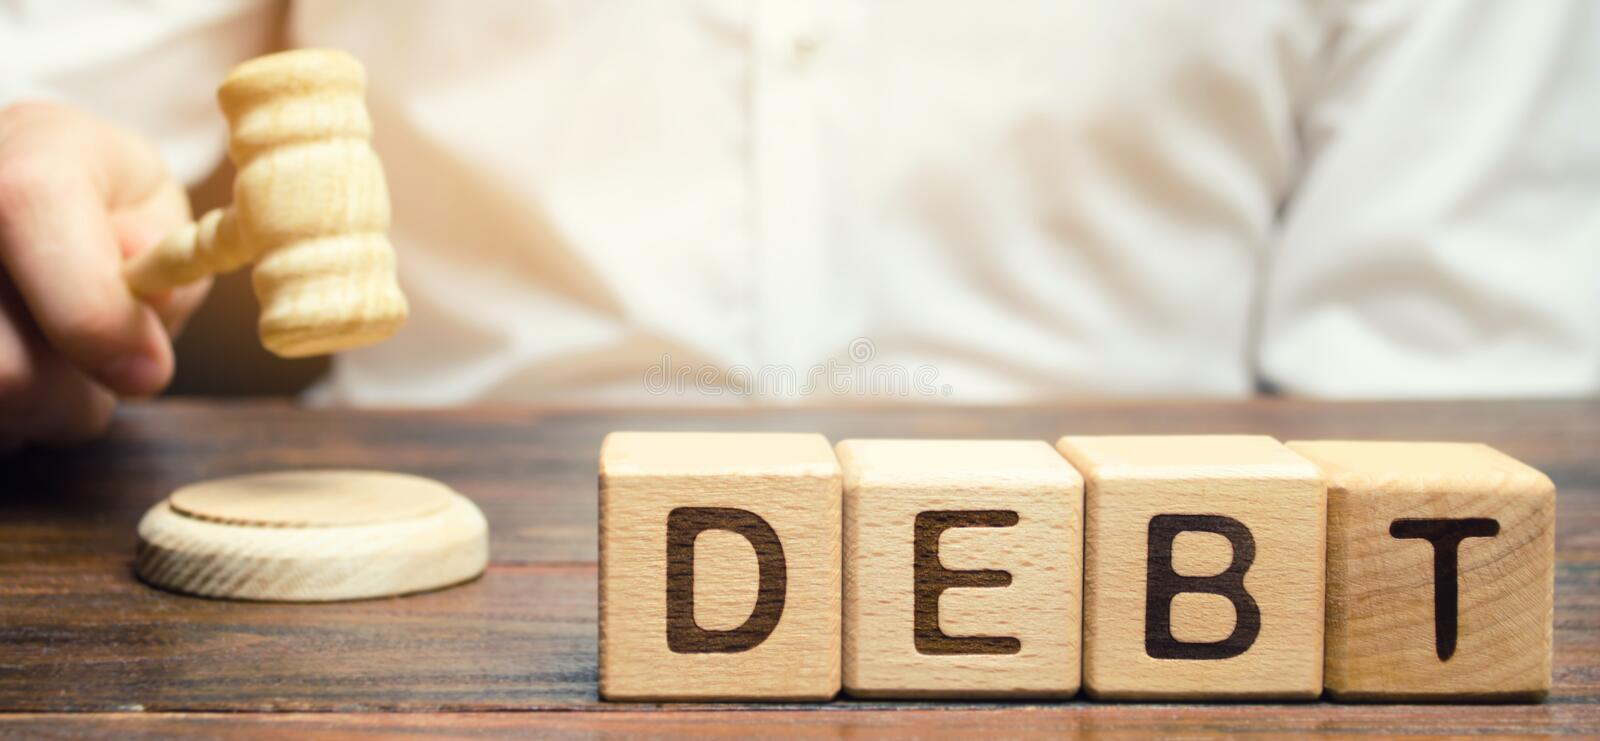 Wooden blocks with the word Debt and judge with a gavel. The concept of judicial punishment for non-payment of debt. Property. Debts. Tax evasion / avoidance stock photo